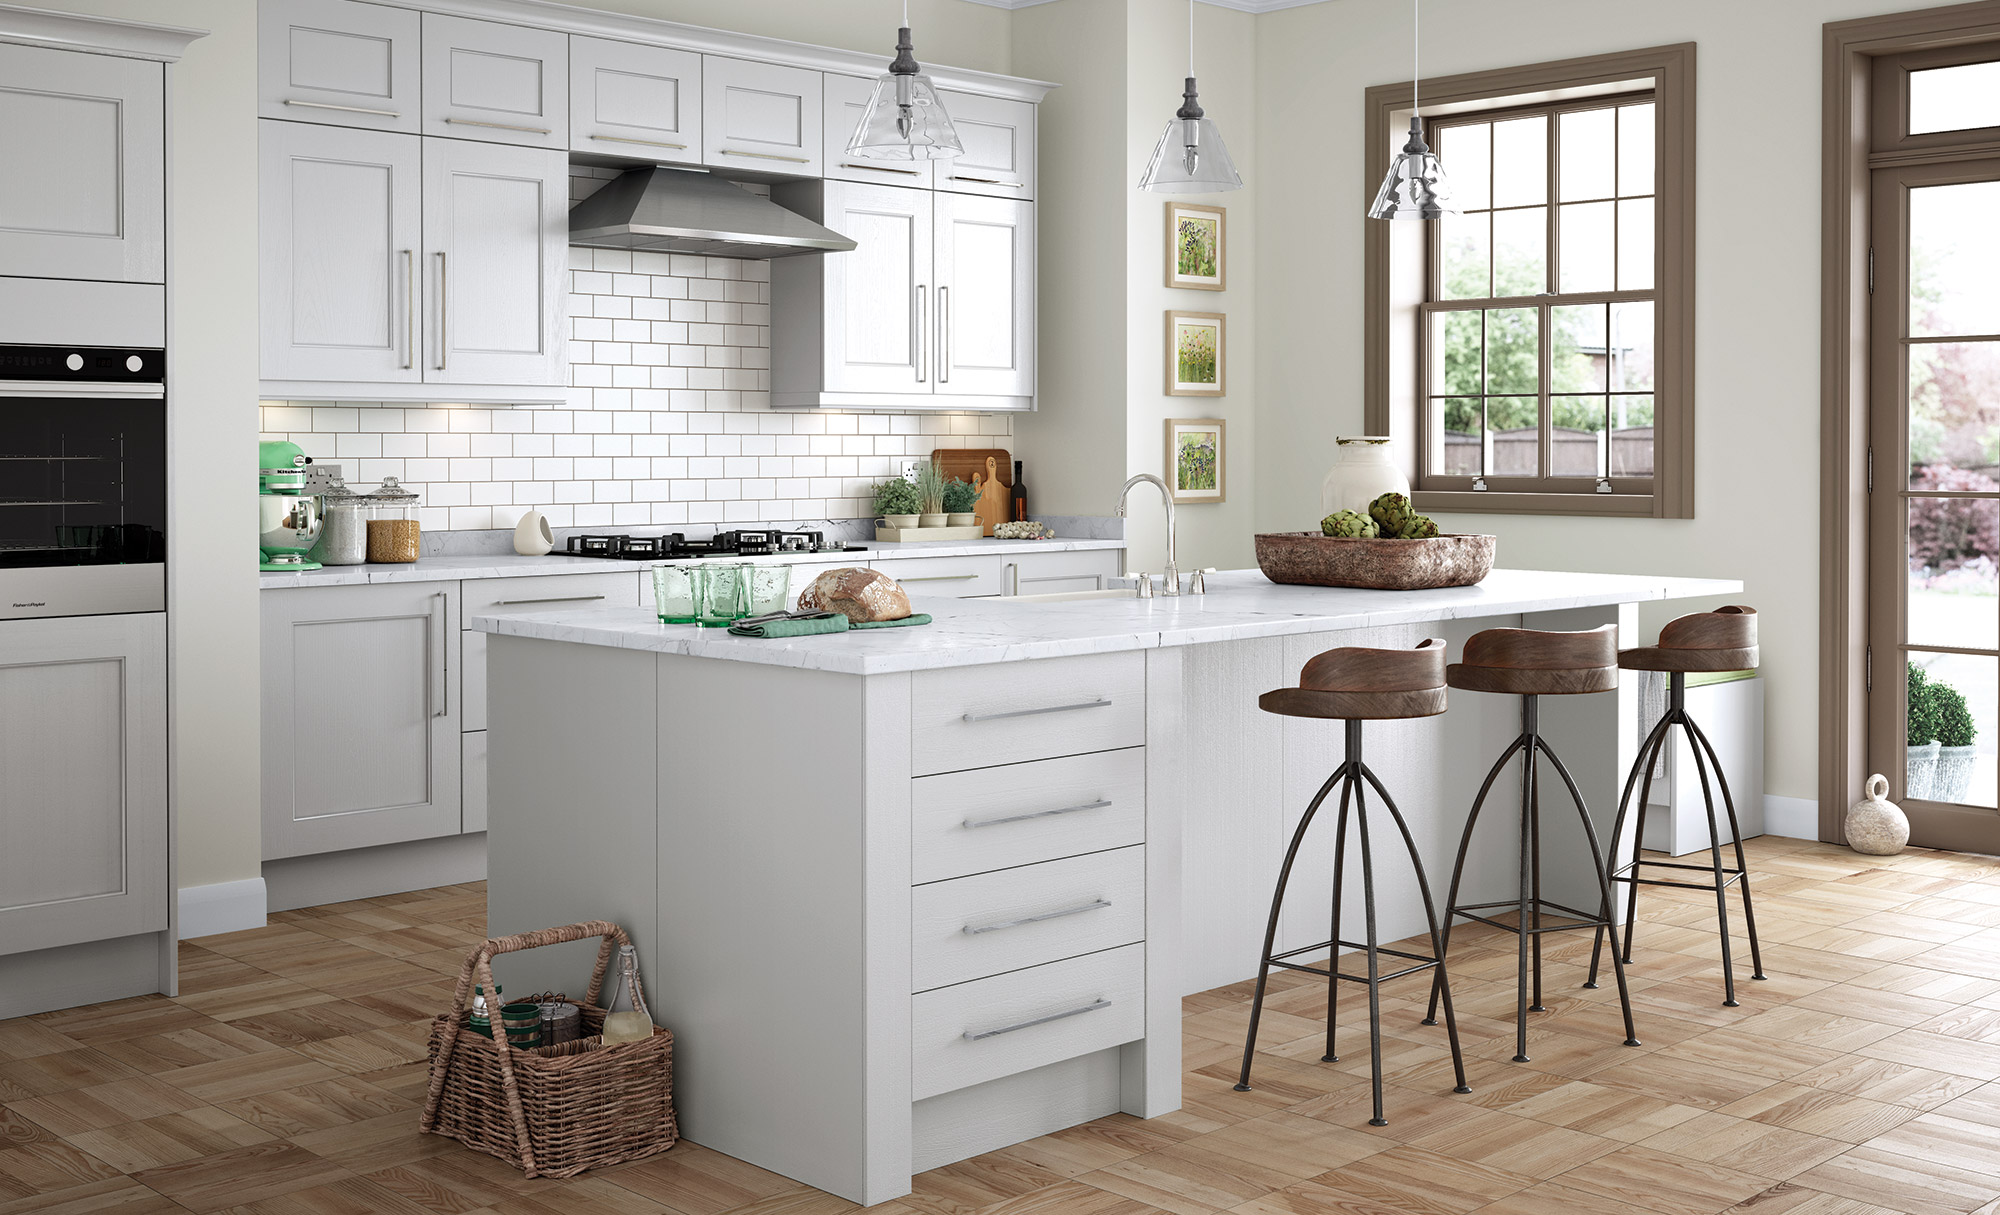 Doors | Quayside Kitchens - Part 2